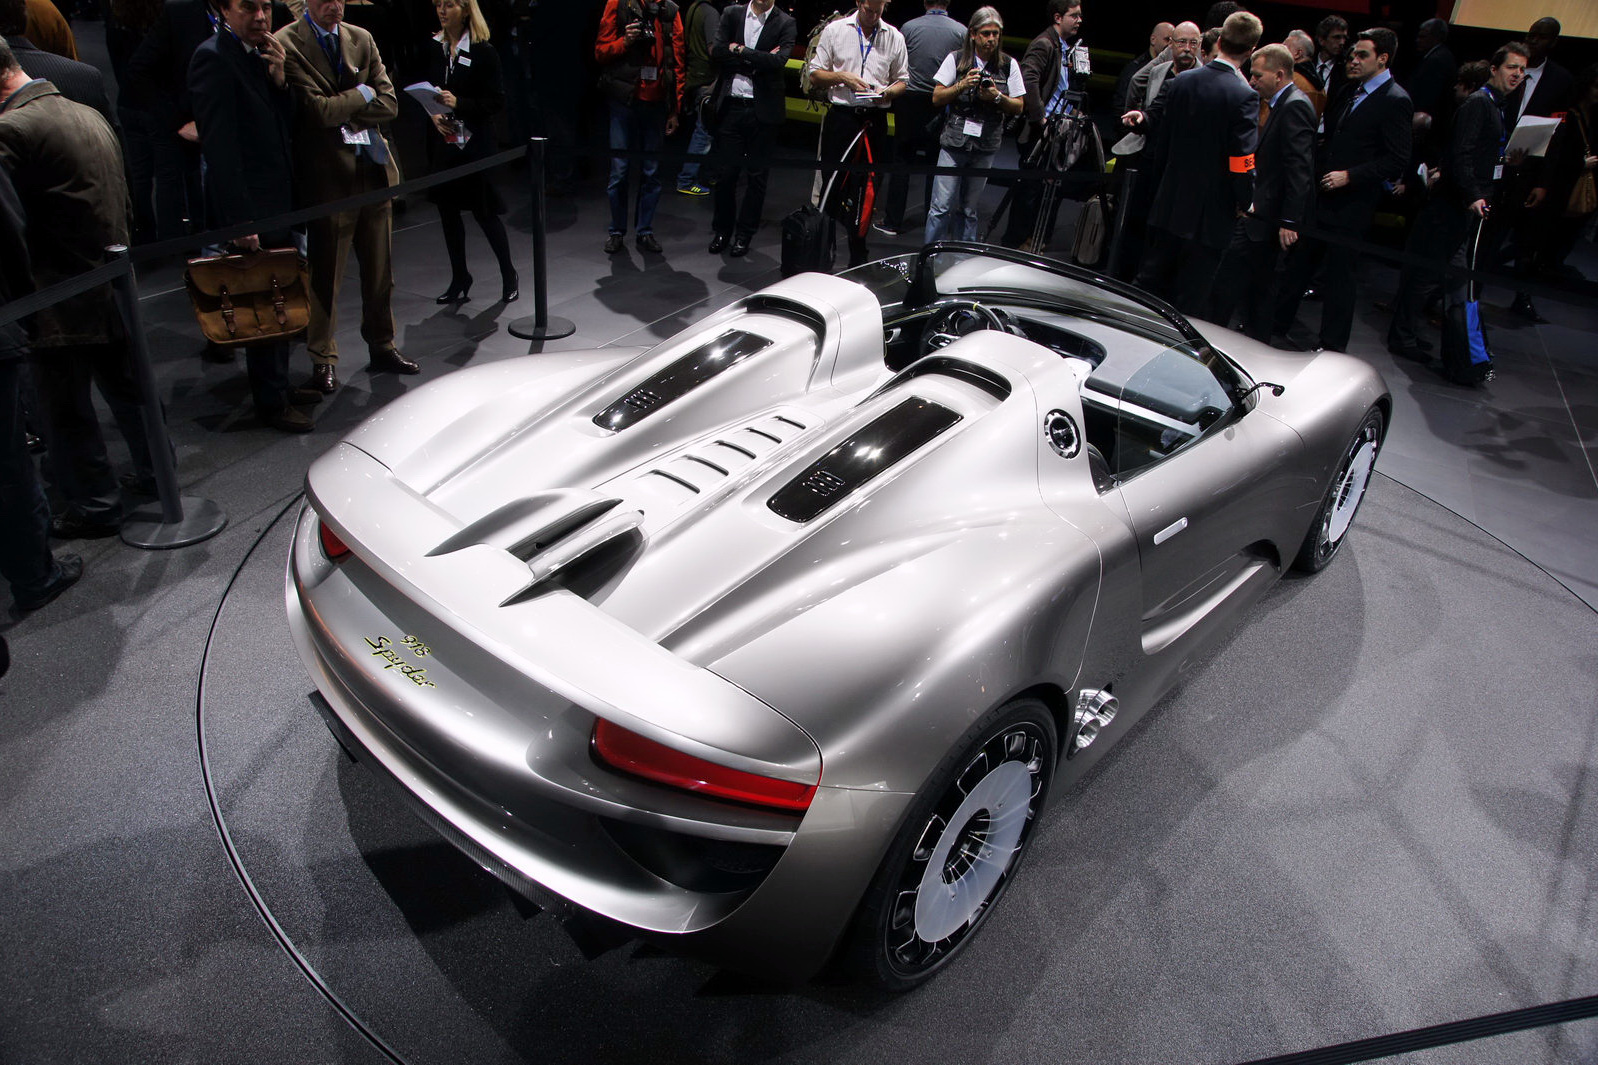 report claims porsche may price 918 spyder at 630 000 or 1 5 times higher t. Black Bedroom Furniture Sets. Home Design Ideas